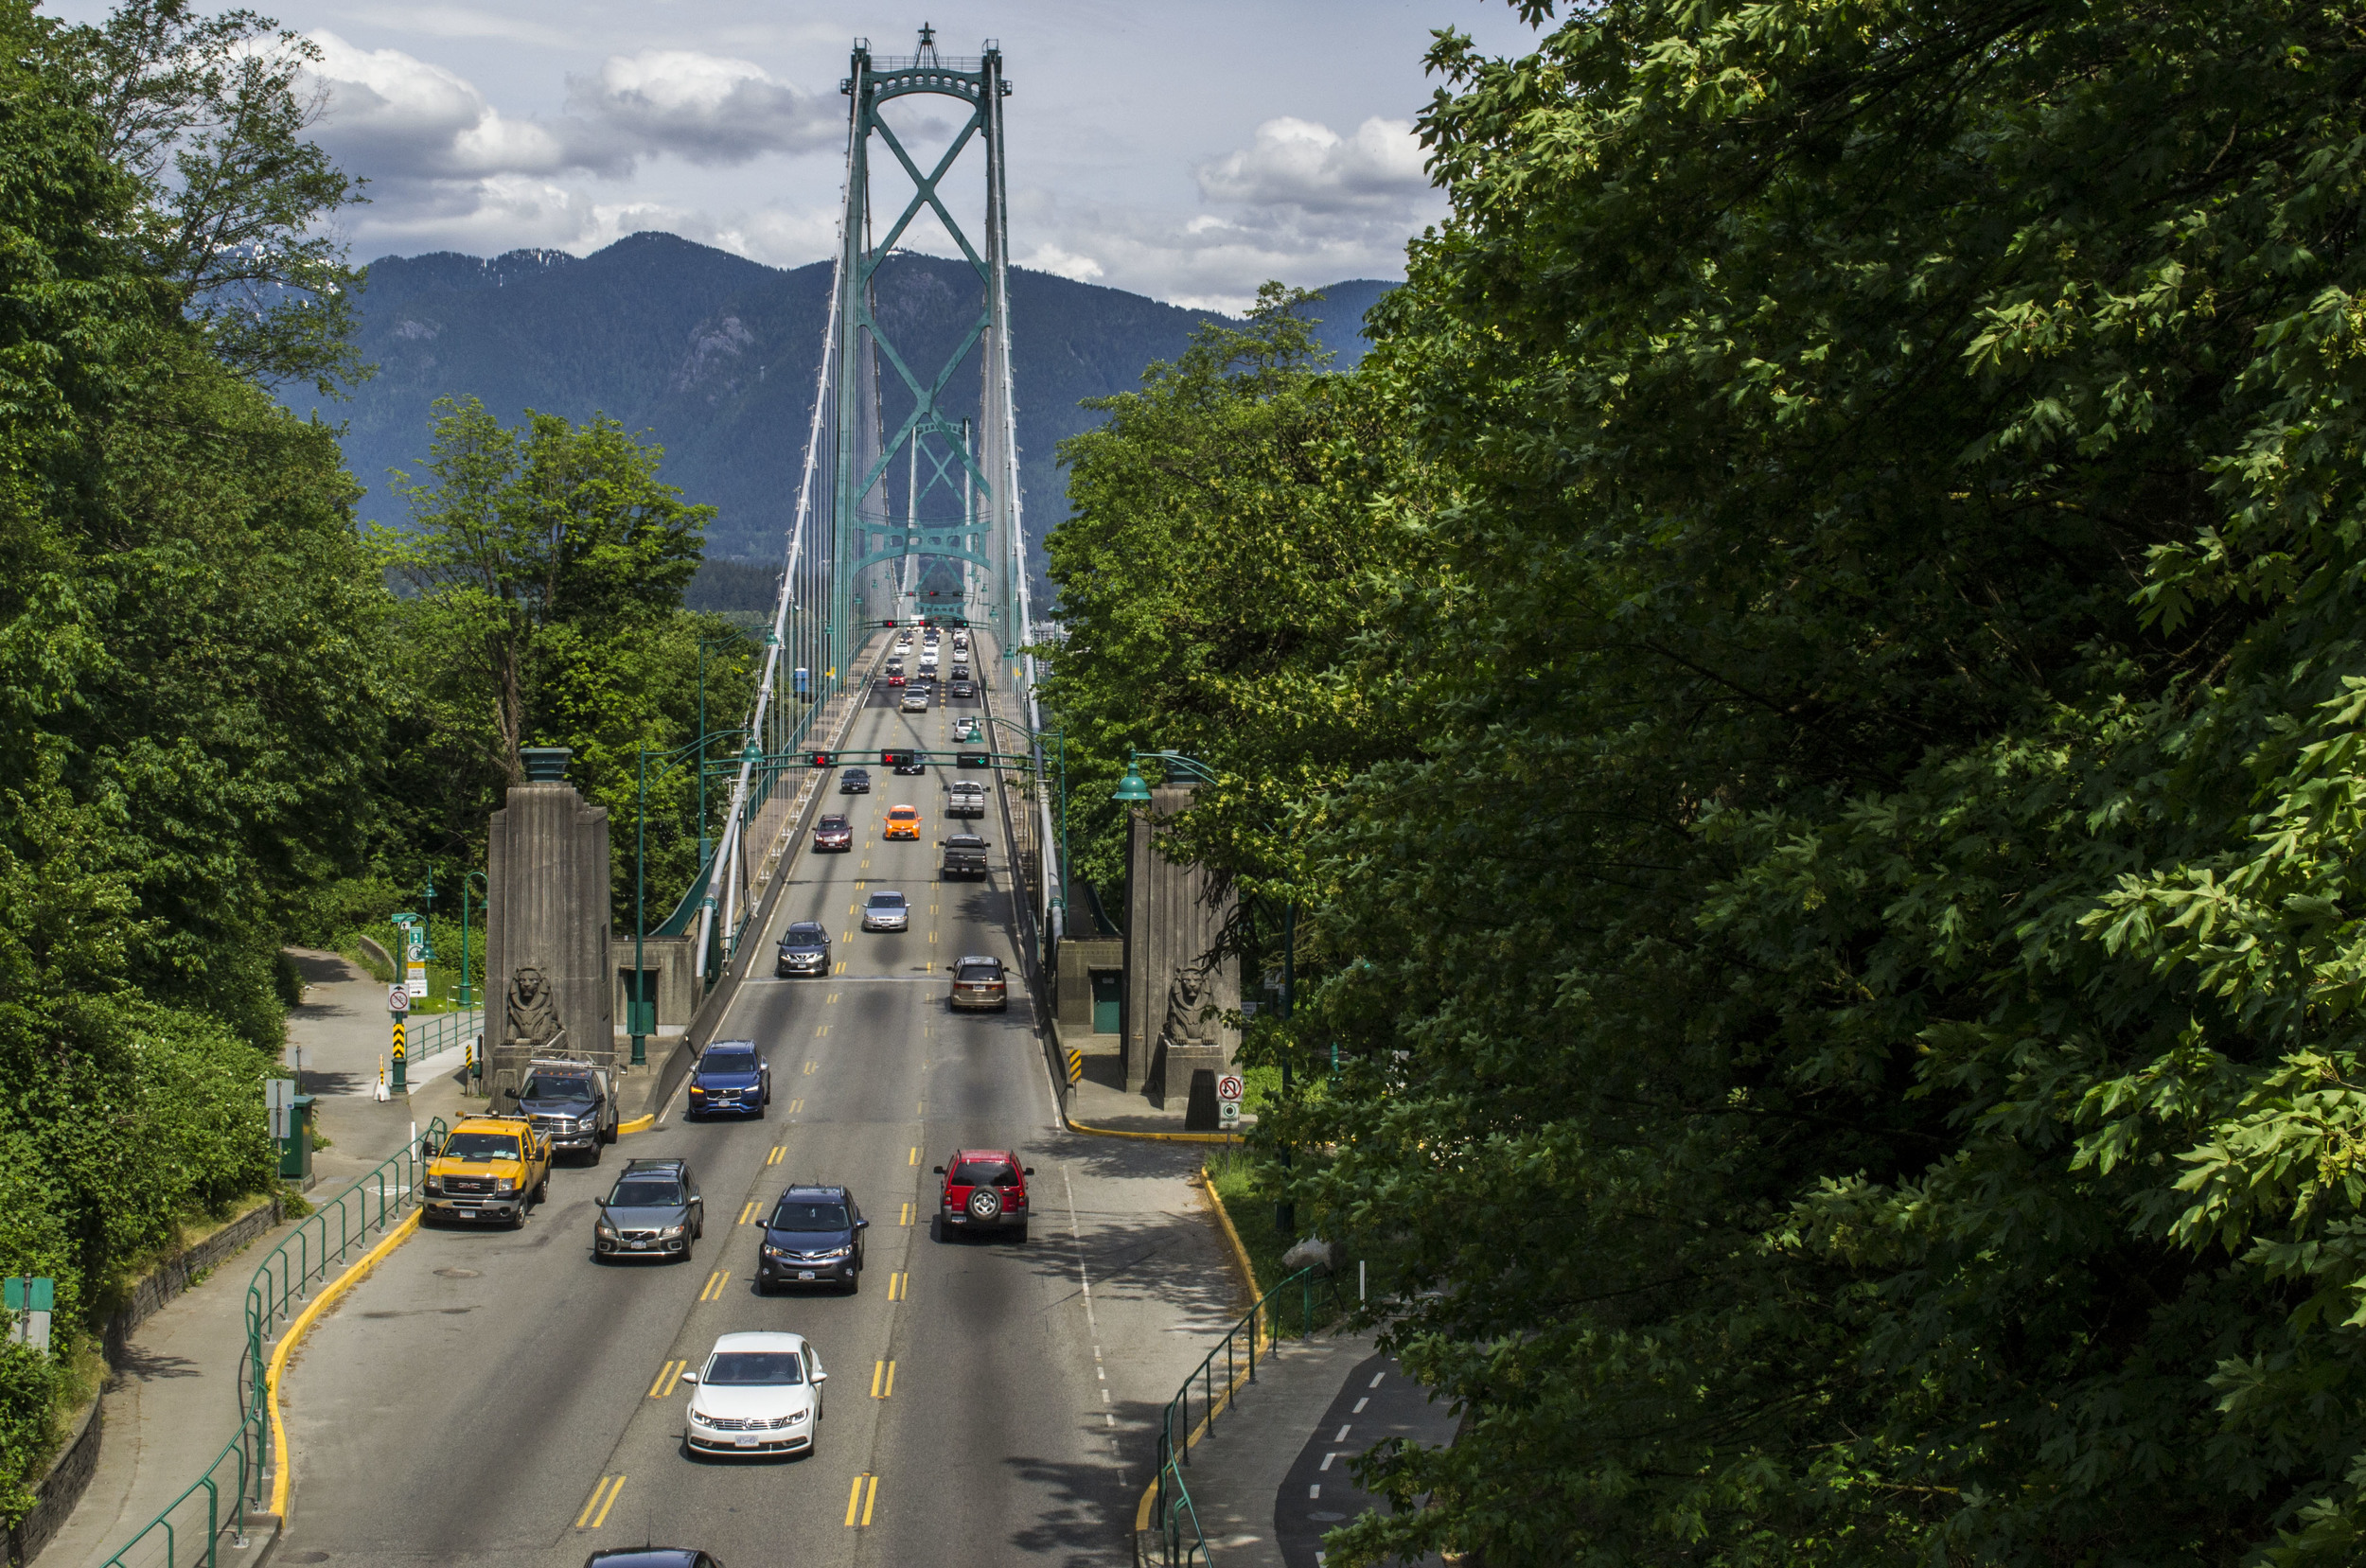 Vancouver private tour on Lions Gate Bridge.